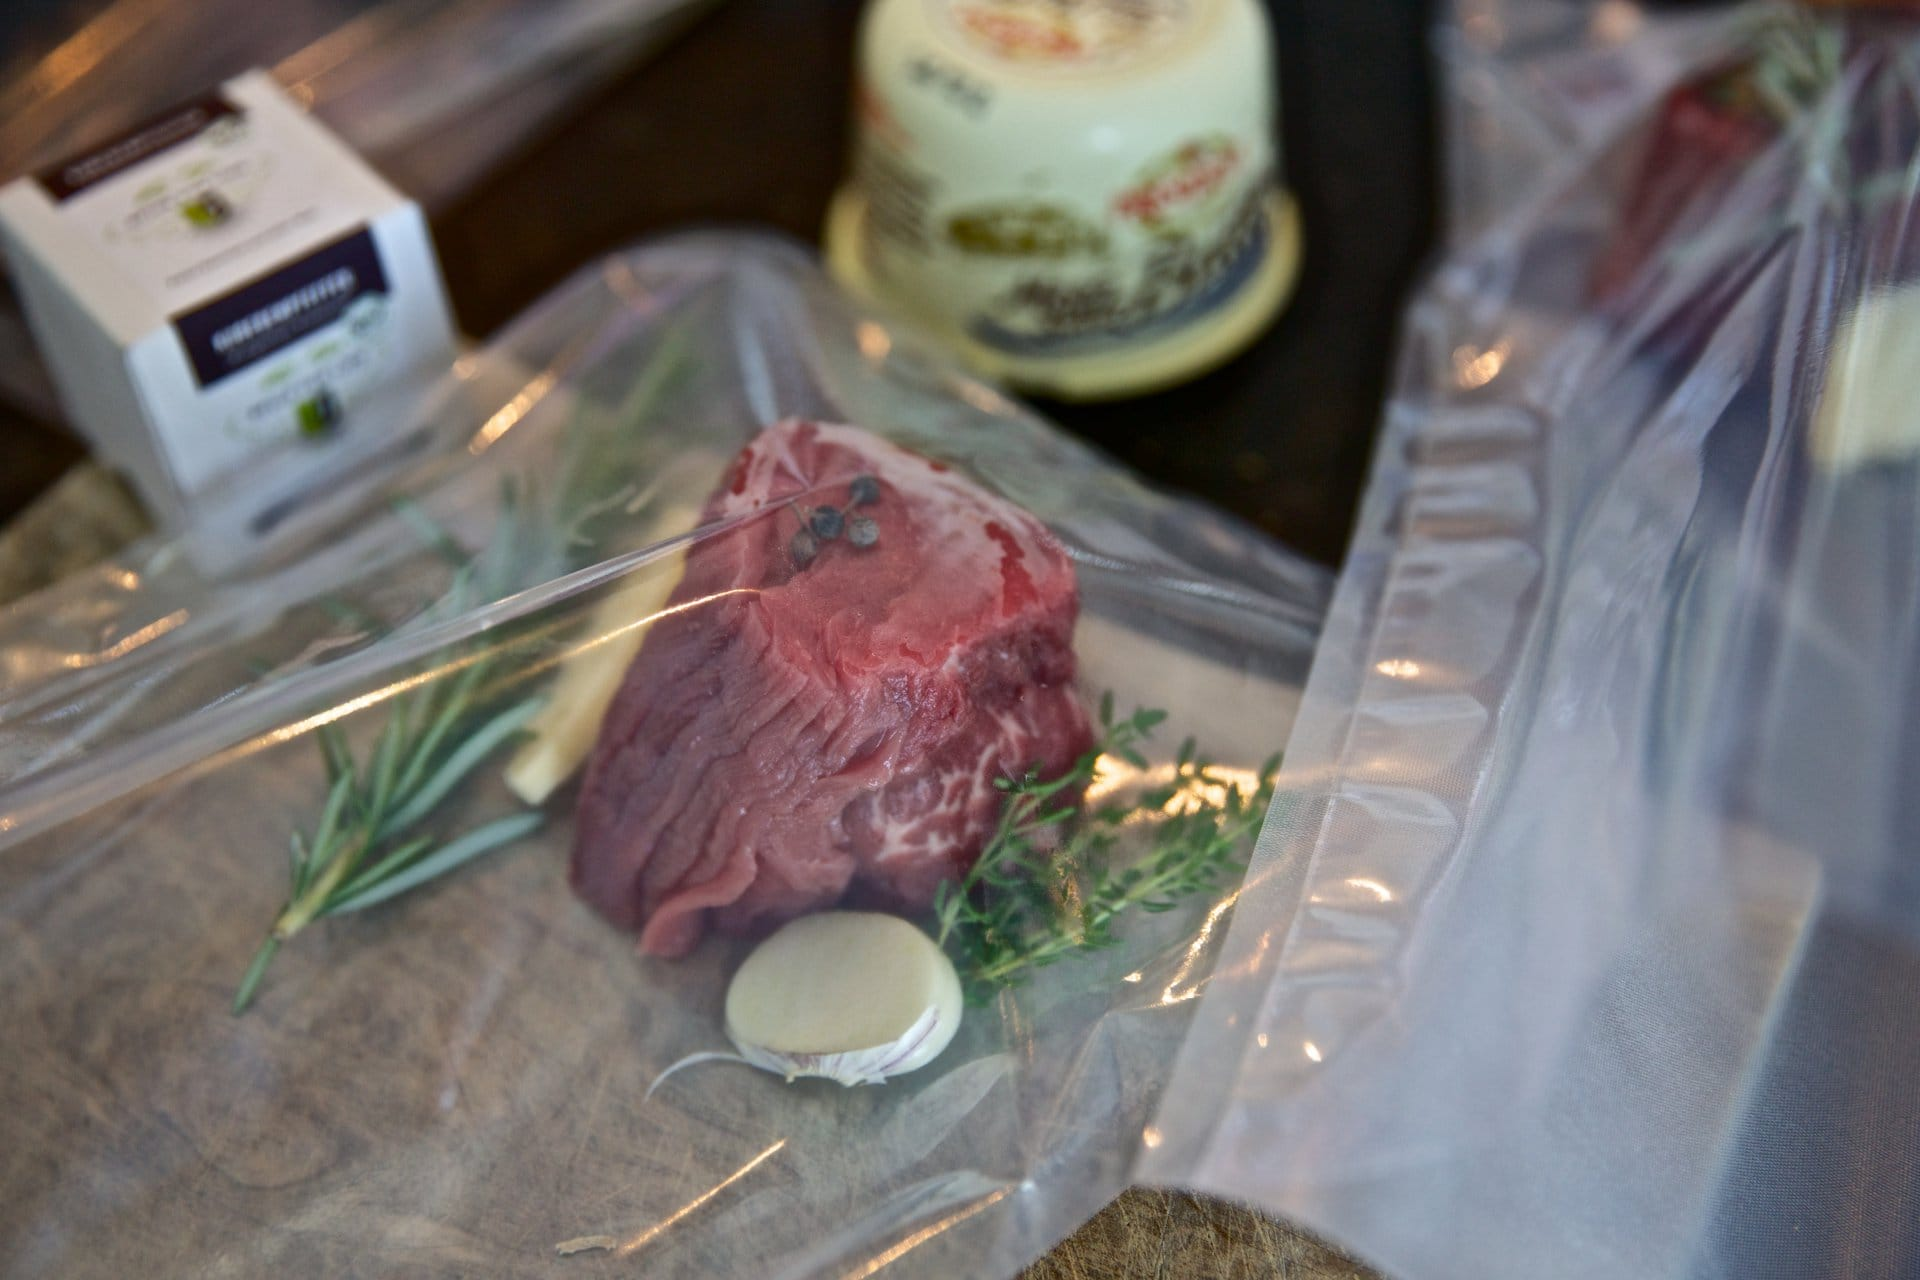 2013 06 23 steak sousvide 6